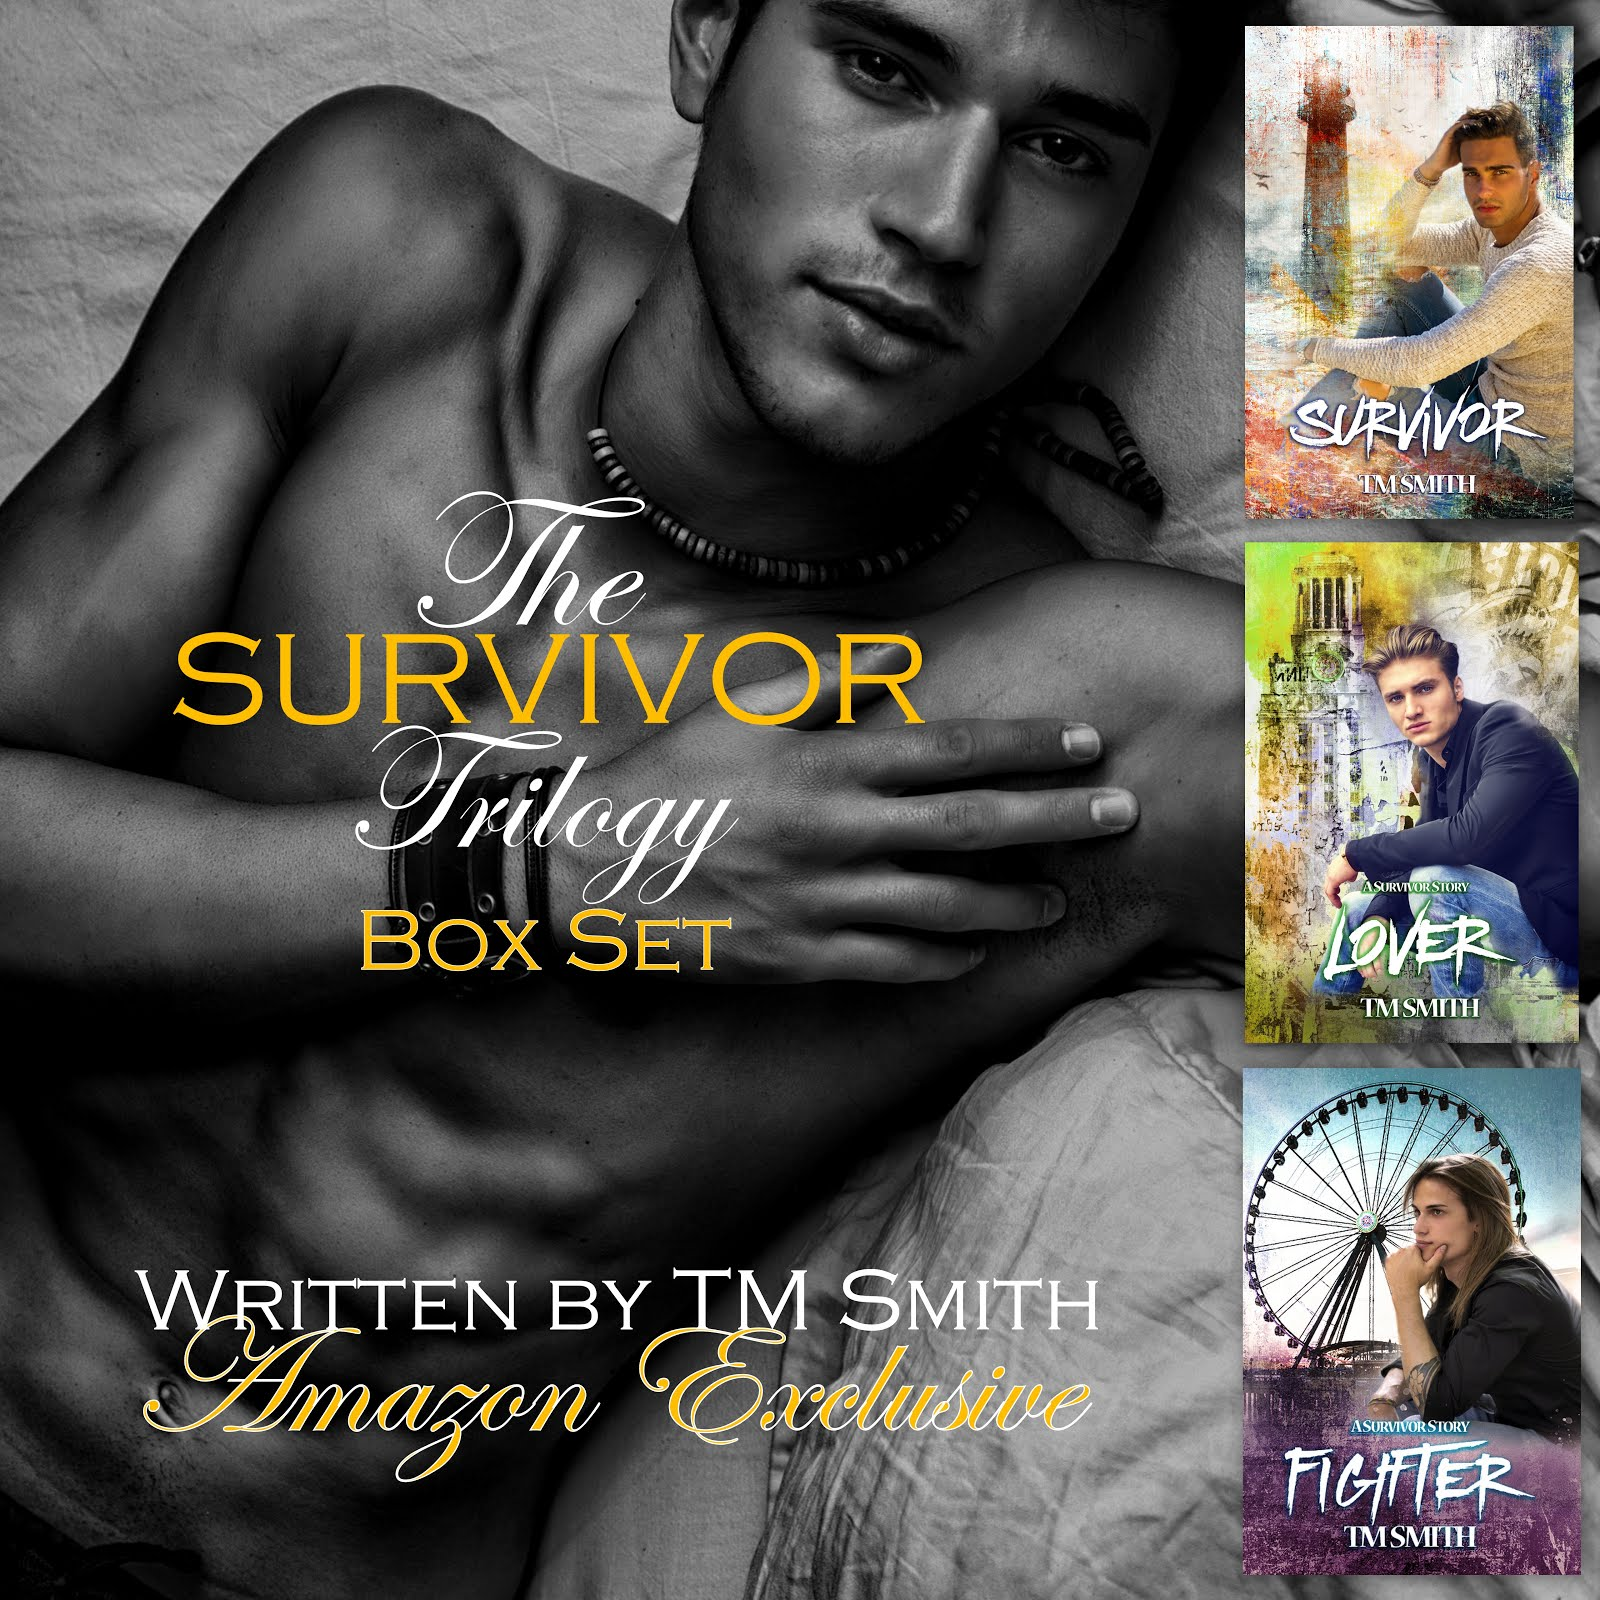 Survivor trilogy box set Available exclusively from Amazon and Free with Kindle Unlimited